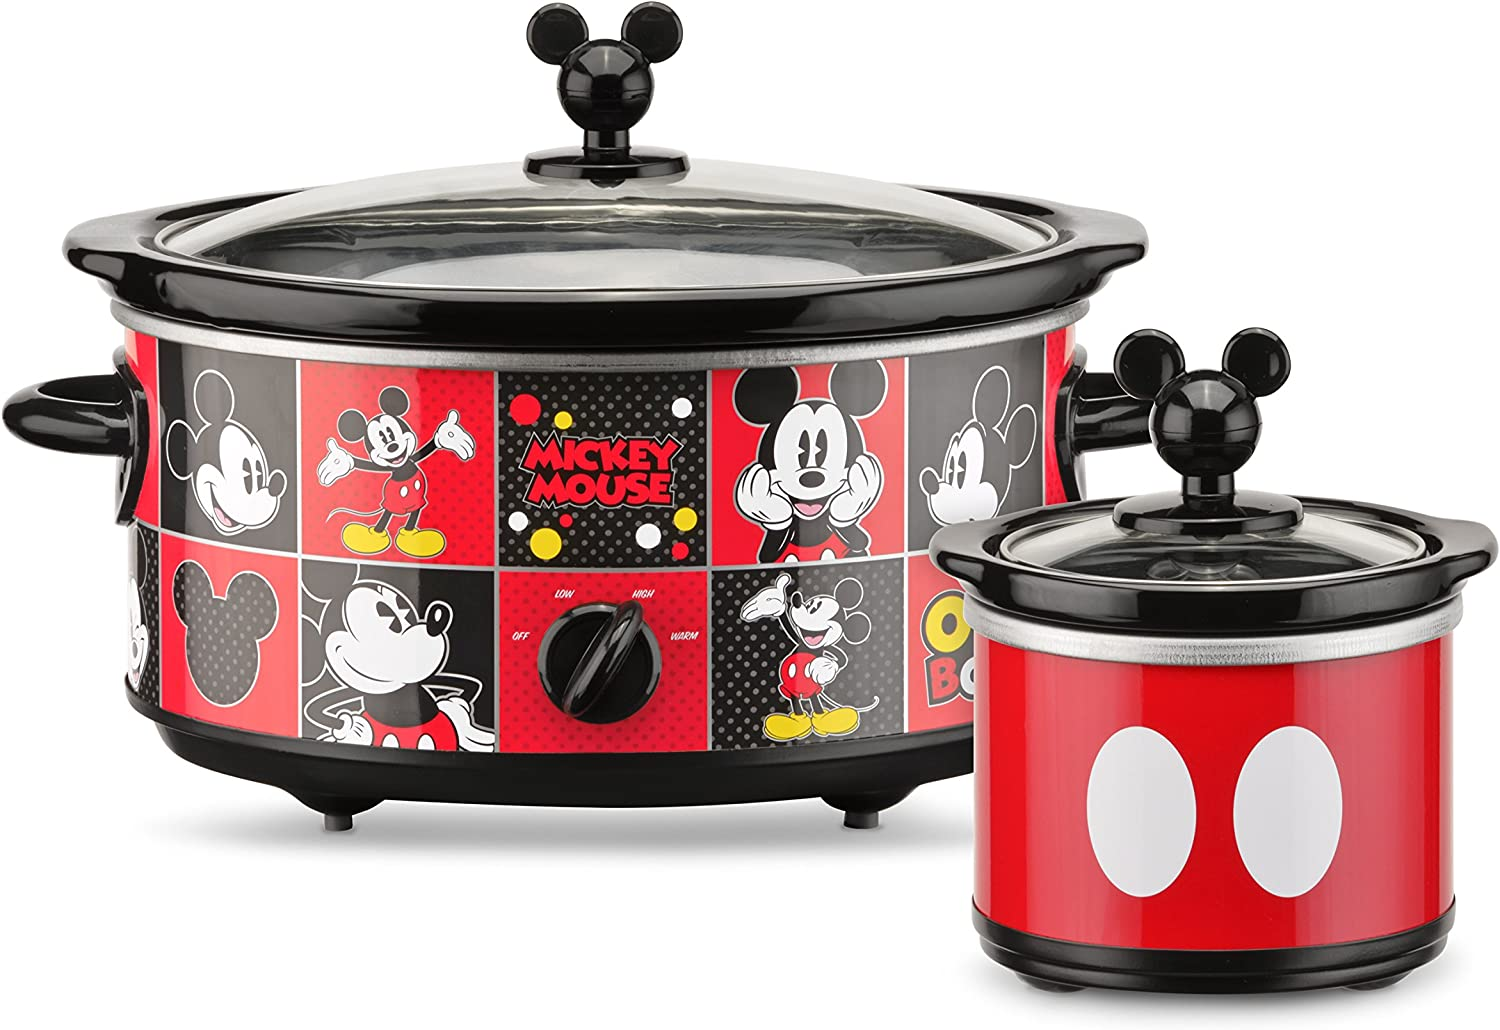 Disney DCM-502 Mickey Mouse Oval Slow Cooker with 20-Ounce Dipper, 5-Quart, Red Black